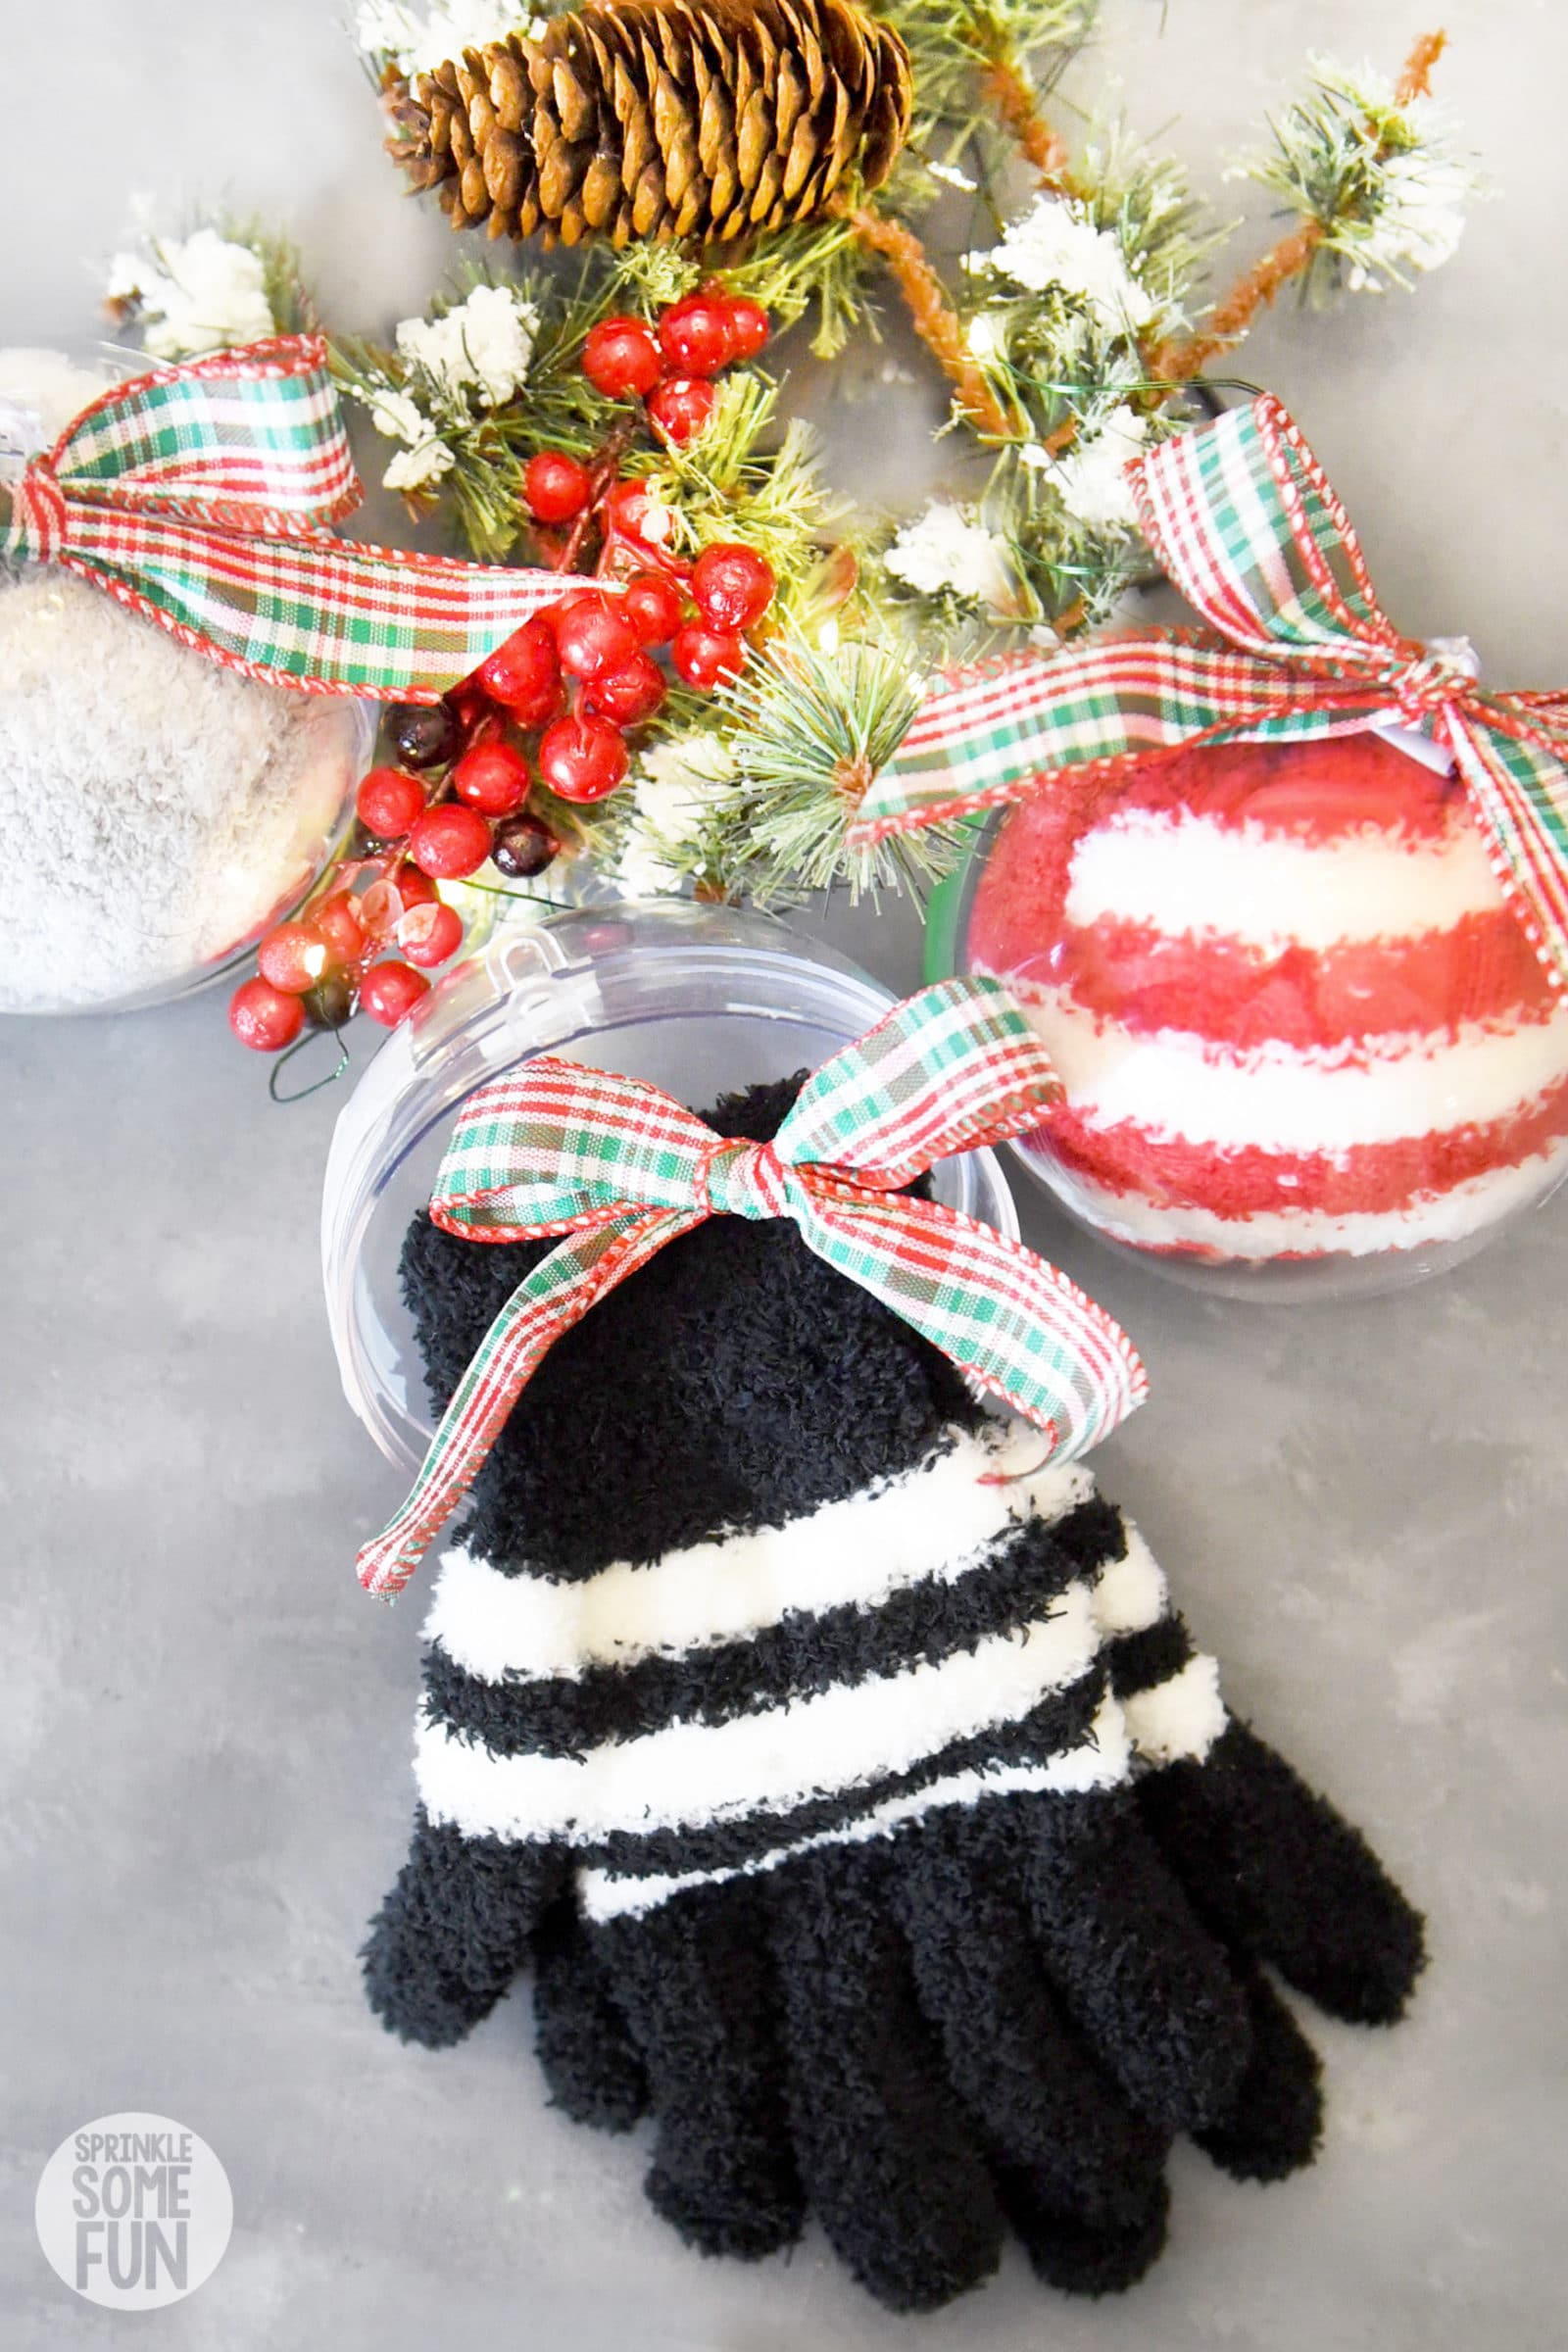 Winter Socks & Gloves Ornaments DIY gift